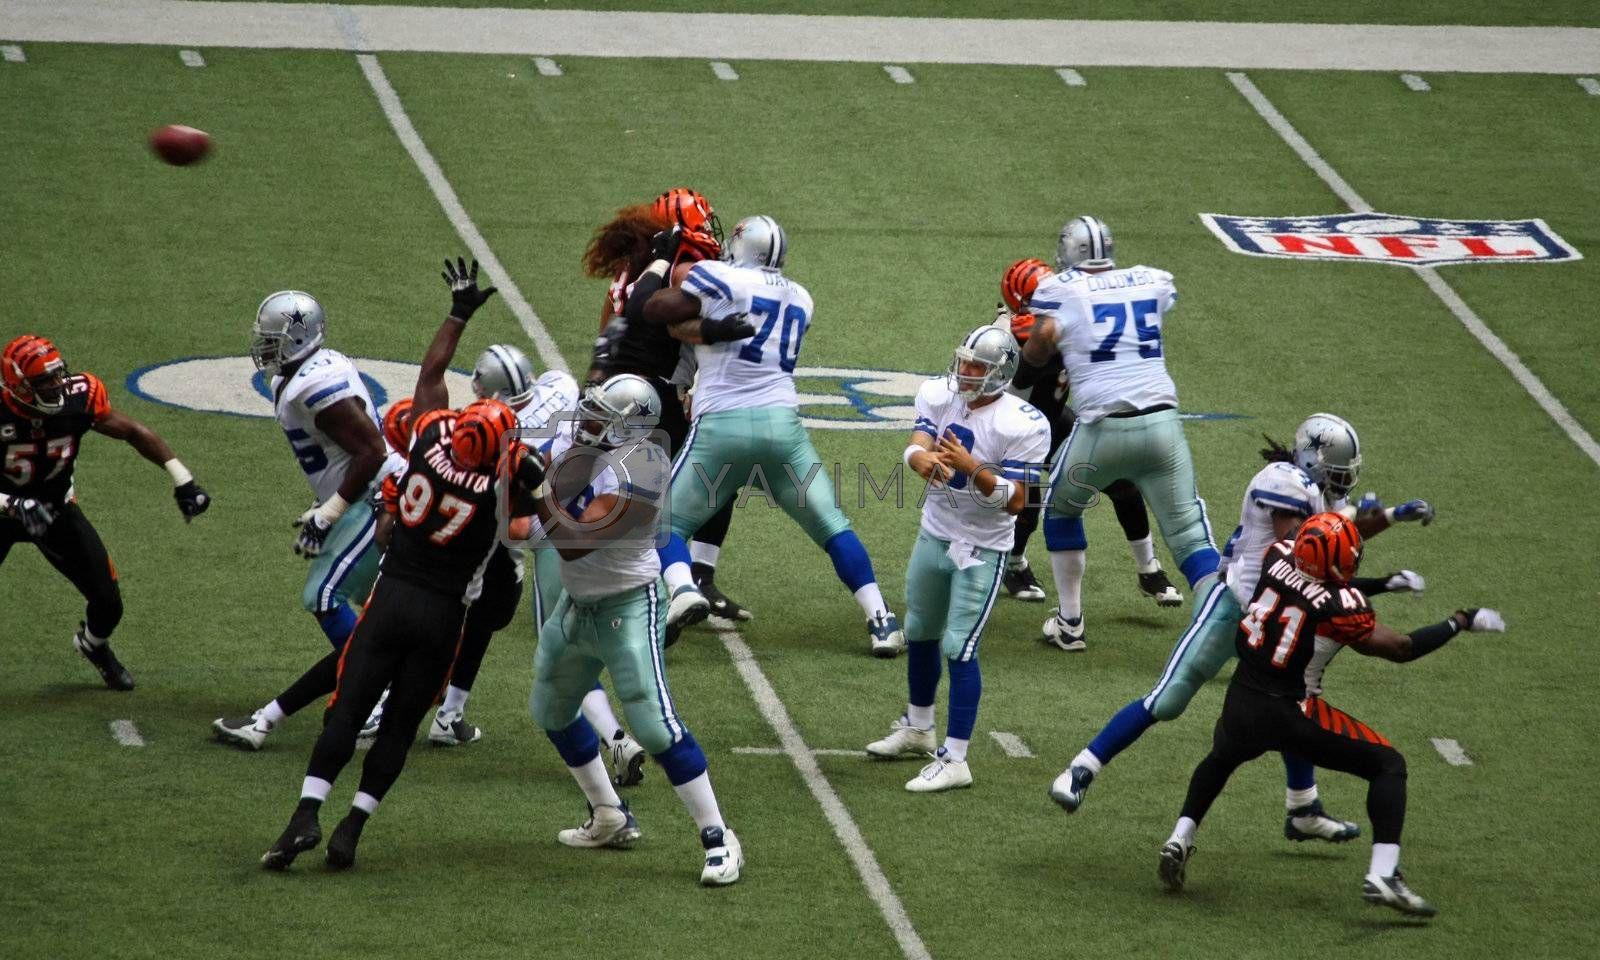 DALLAS - OCT 5: Taken in Texas Stadium in Irving, Texas on Sunday, October 5, 2008. Quarterback Tony Romo is in the pocket thowing a pass down field.